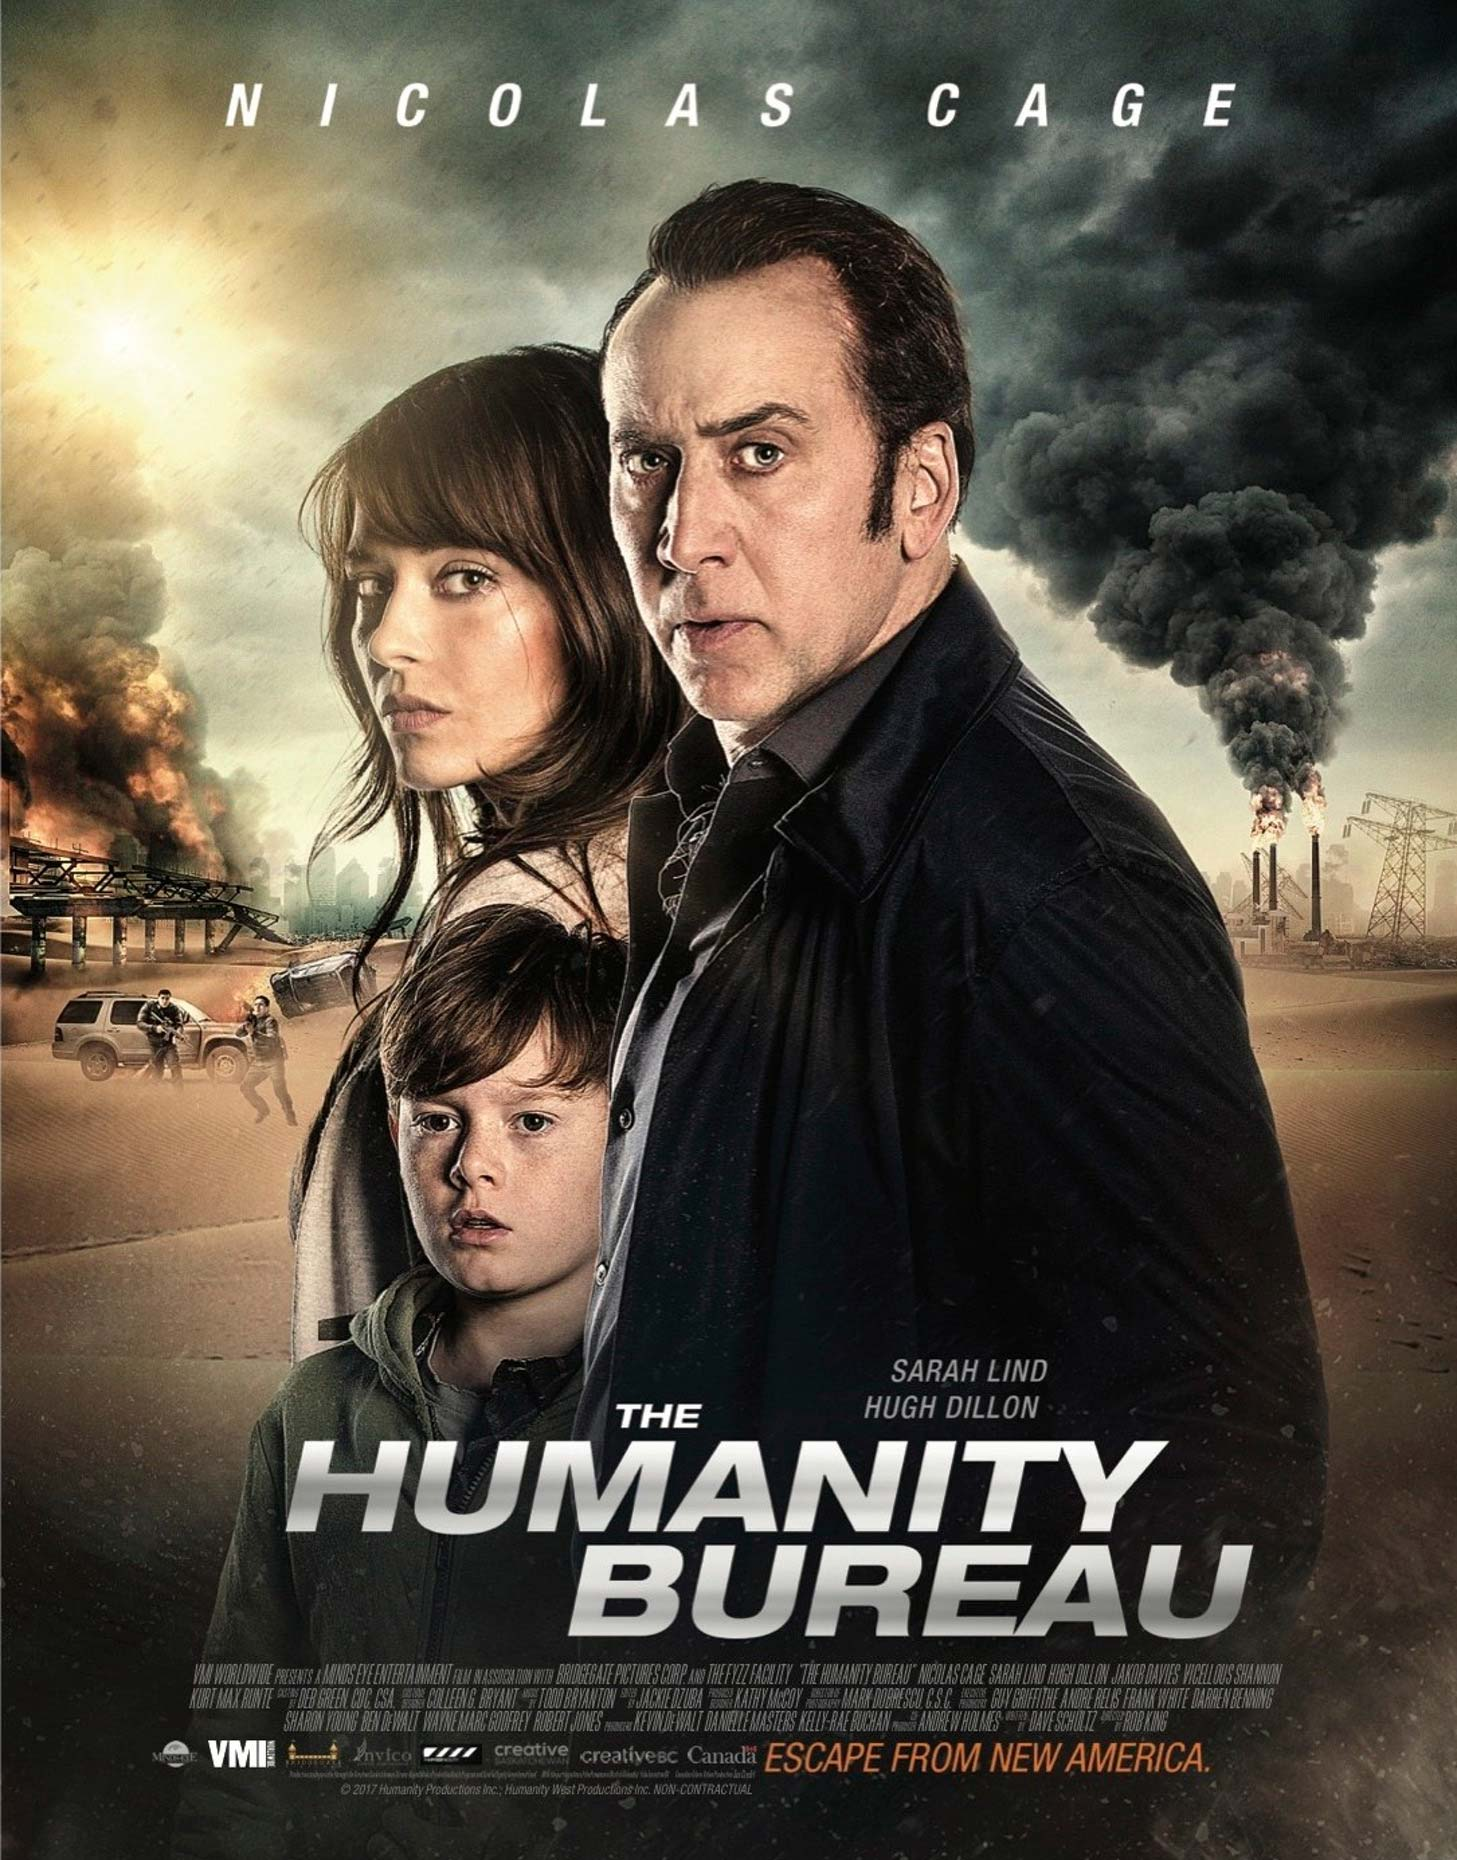 Unit Stills for the film: Humanity Bureau, starring Nicolas Cage and Sarah Lind.  Photographer: Craig Pulsifer